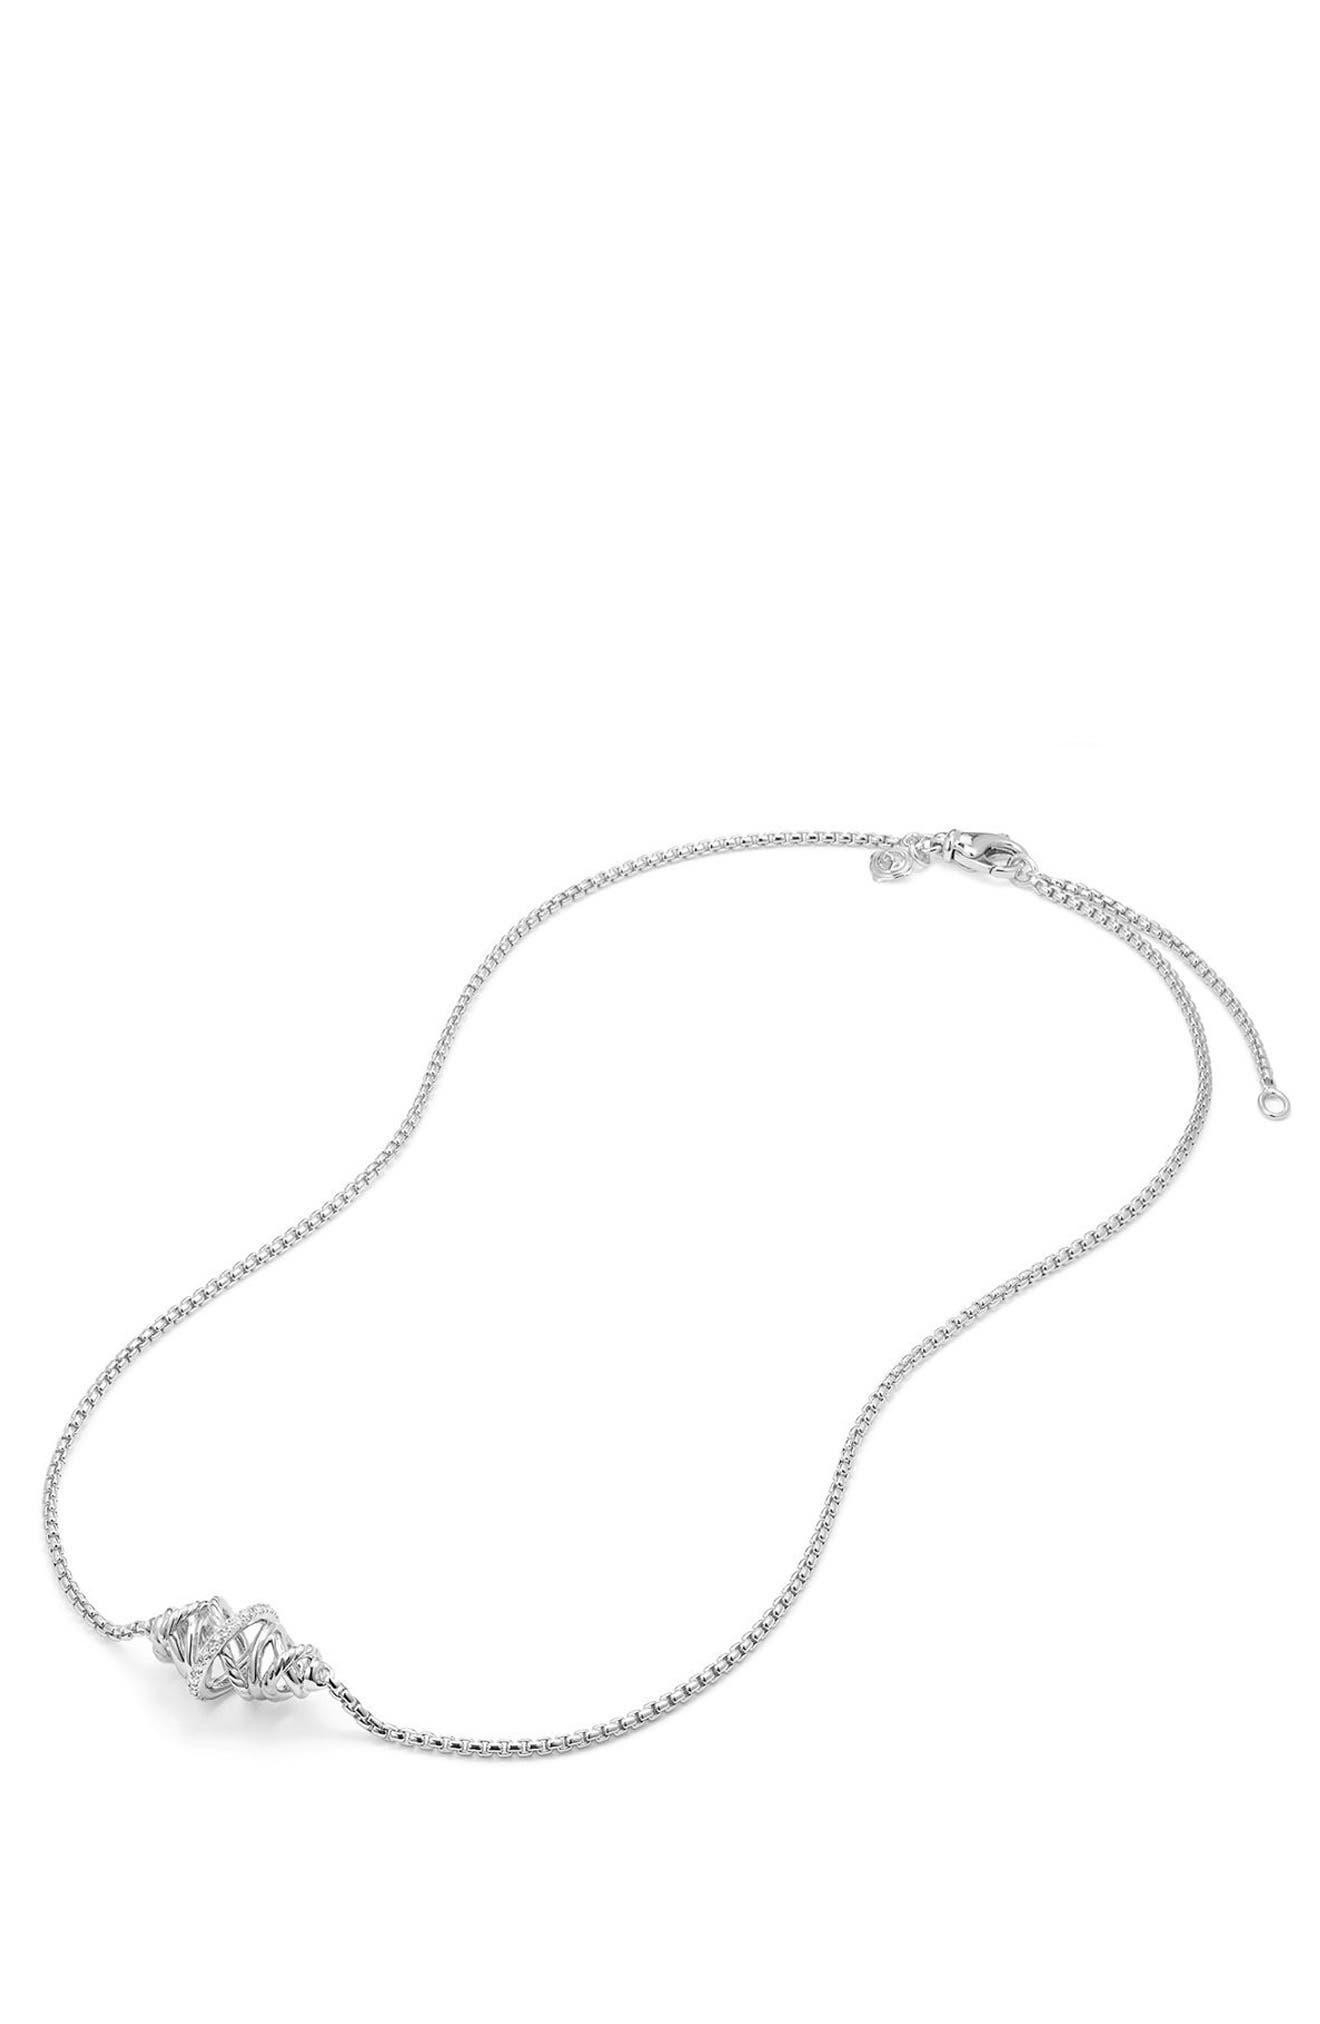 Crossover Single Station Necklace with Diamonds,                             Alternate thumbnail 2, color,                             Silver